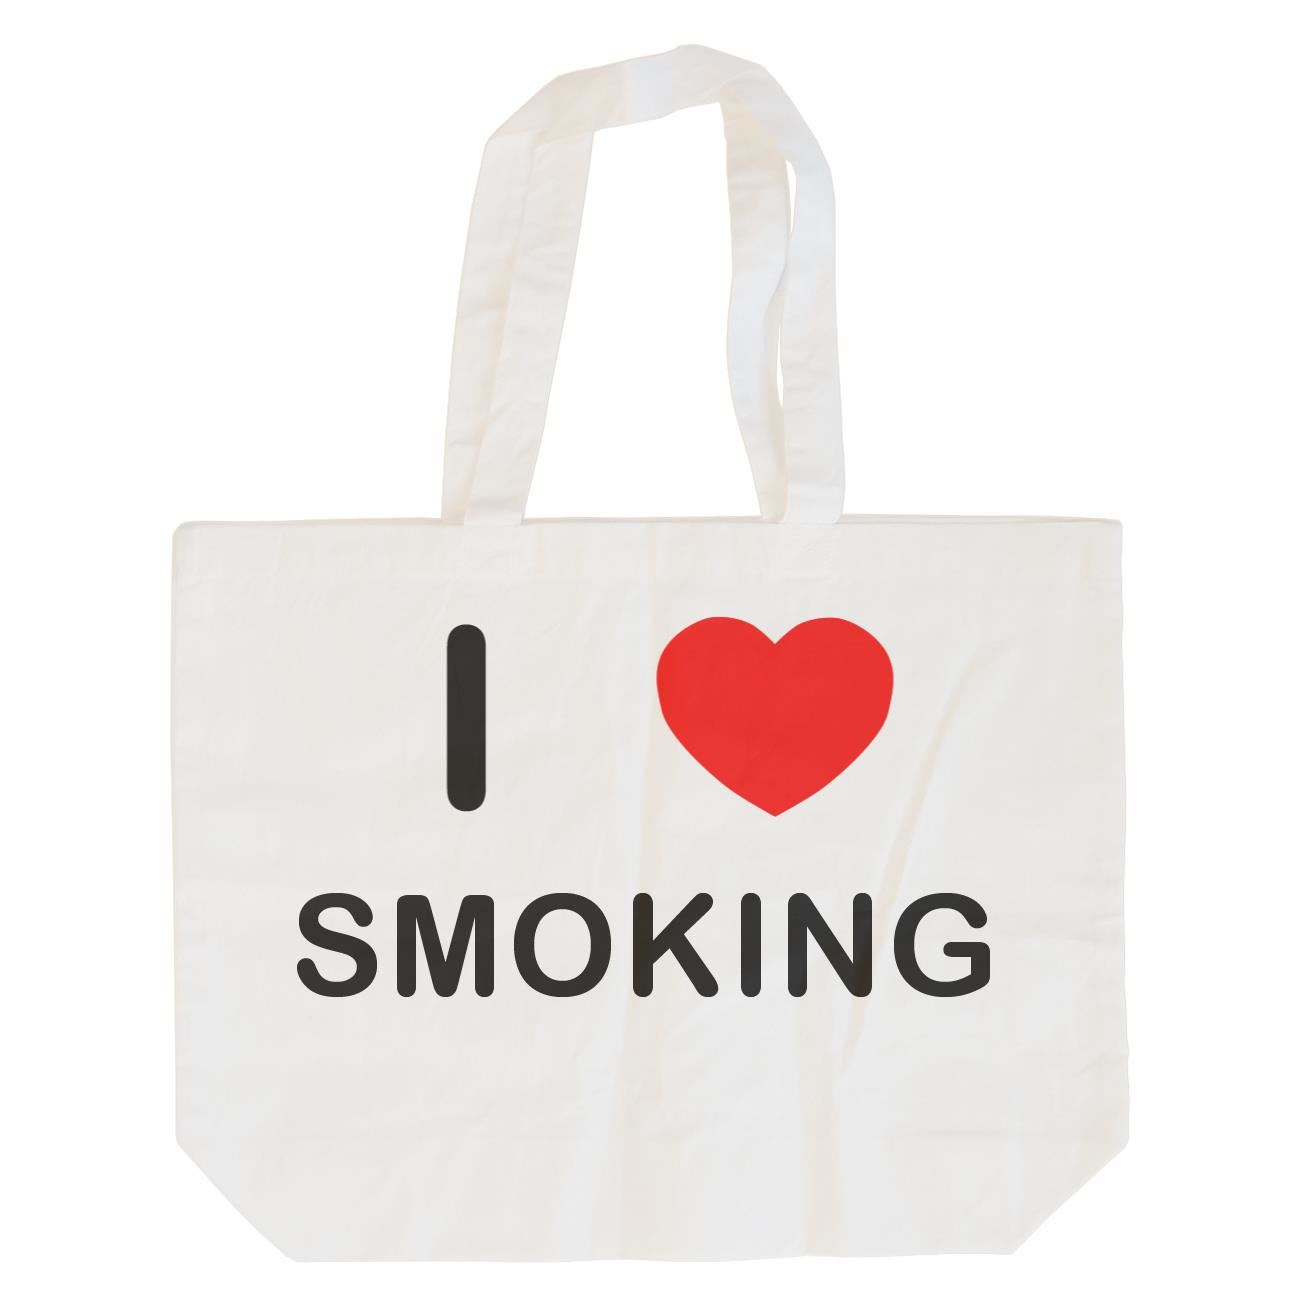 I Love Smoking - Cotton Bag | Size choice Tote, Shopper or Sling